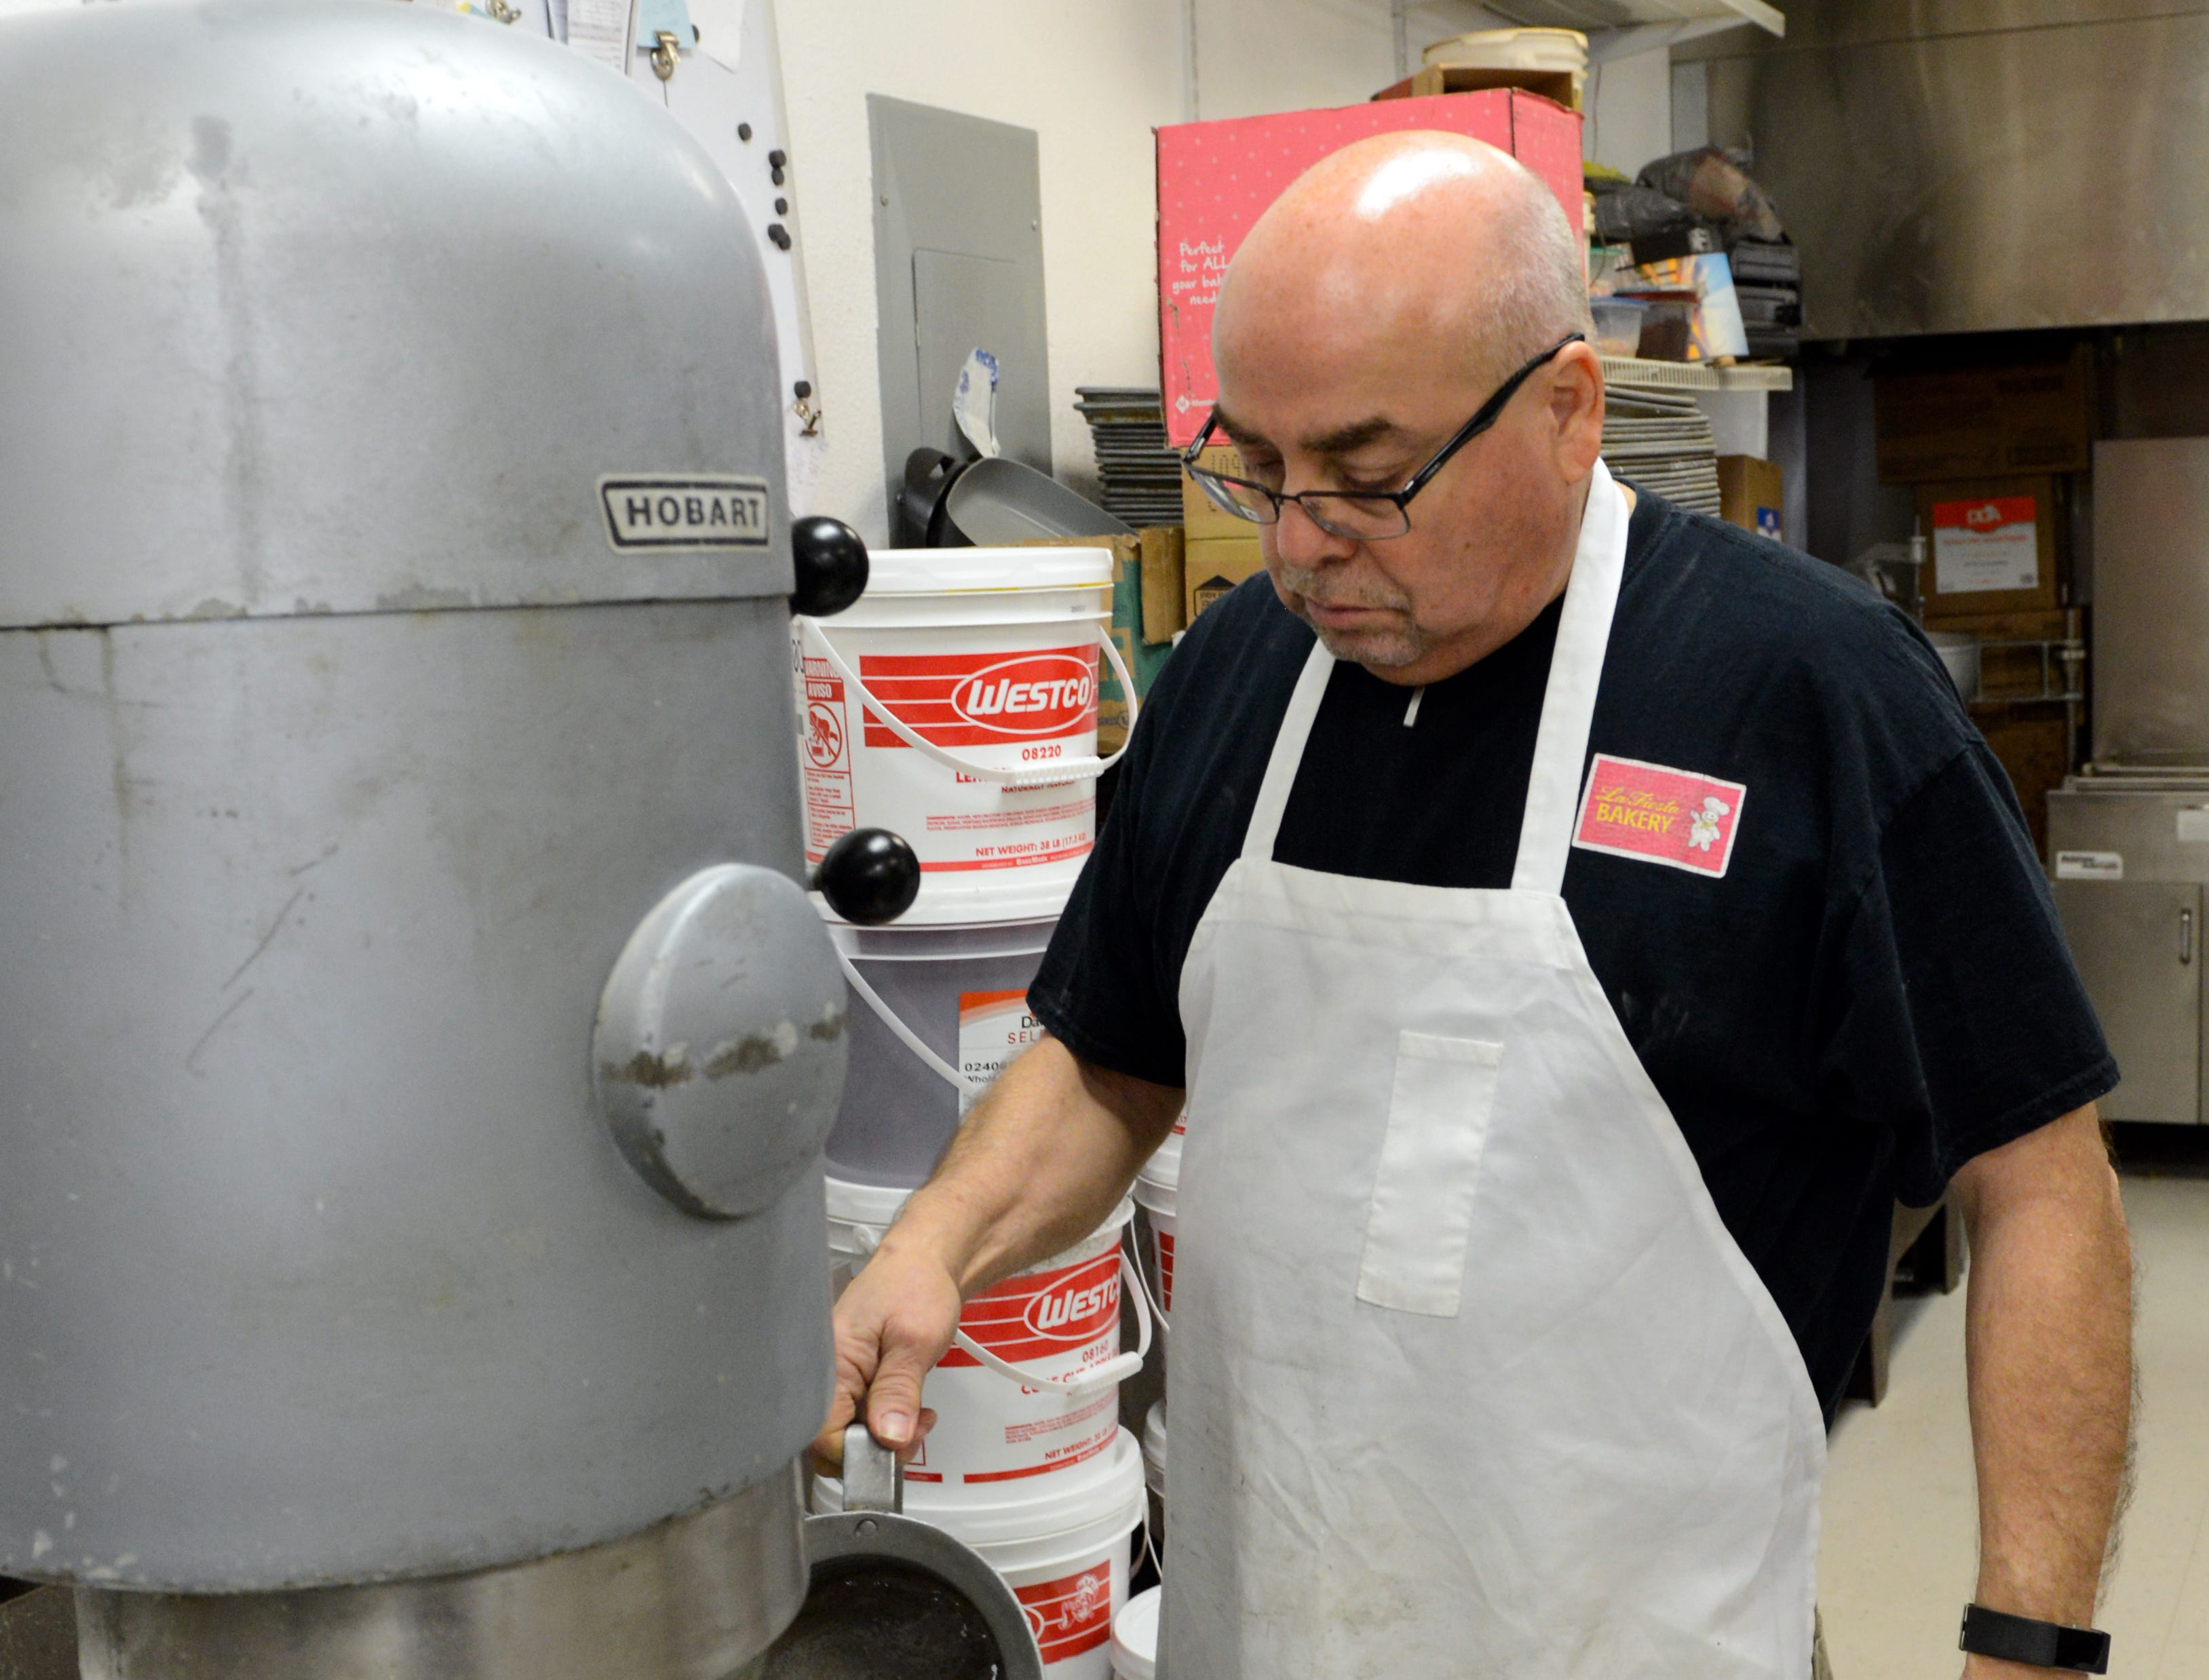 Ray Ortega, who owns La Fiesta Bakery with his wife Gina, makes bolillo dough at the bakery on January 10, 2019.